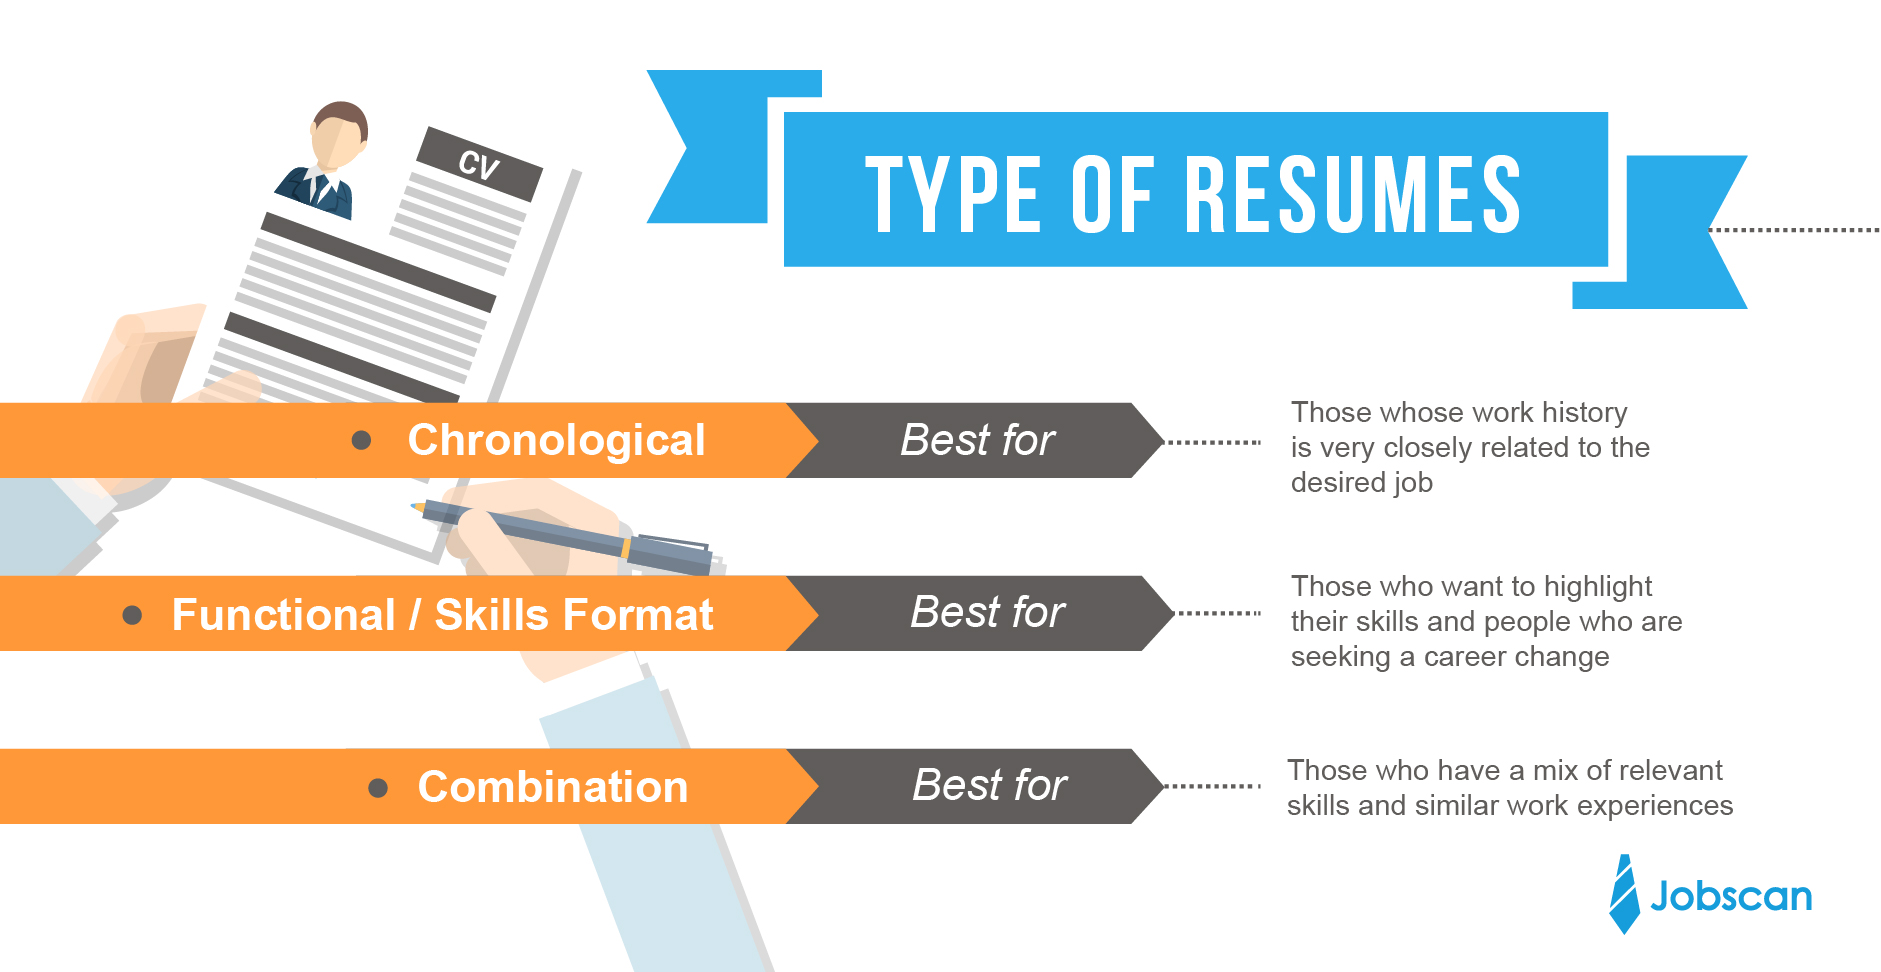 resume writing guide jobscan the resume writing process easier when choosing a format you should consider the job for which you are applying chronological functional and hybrid